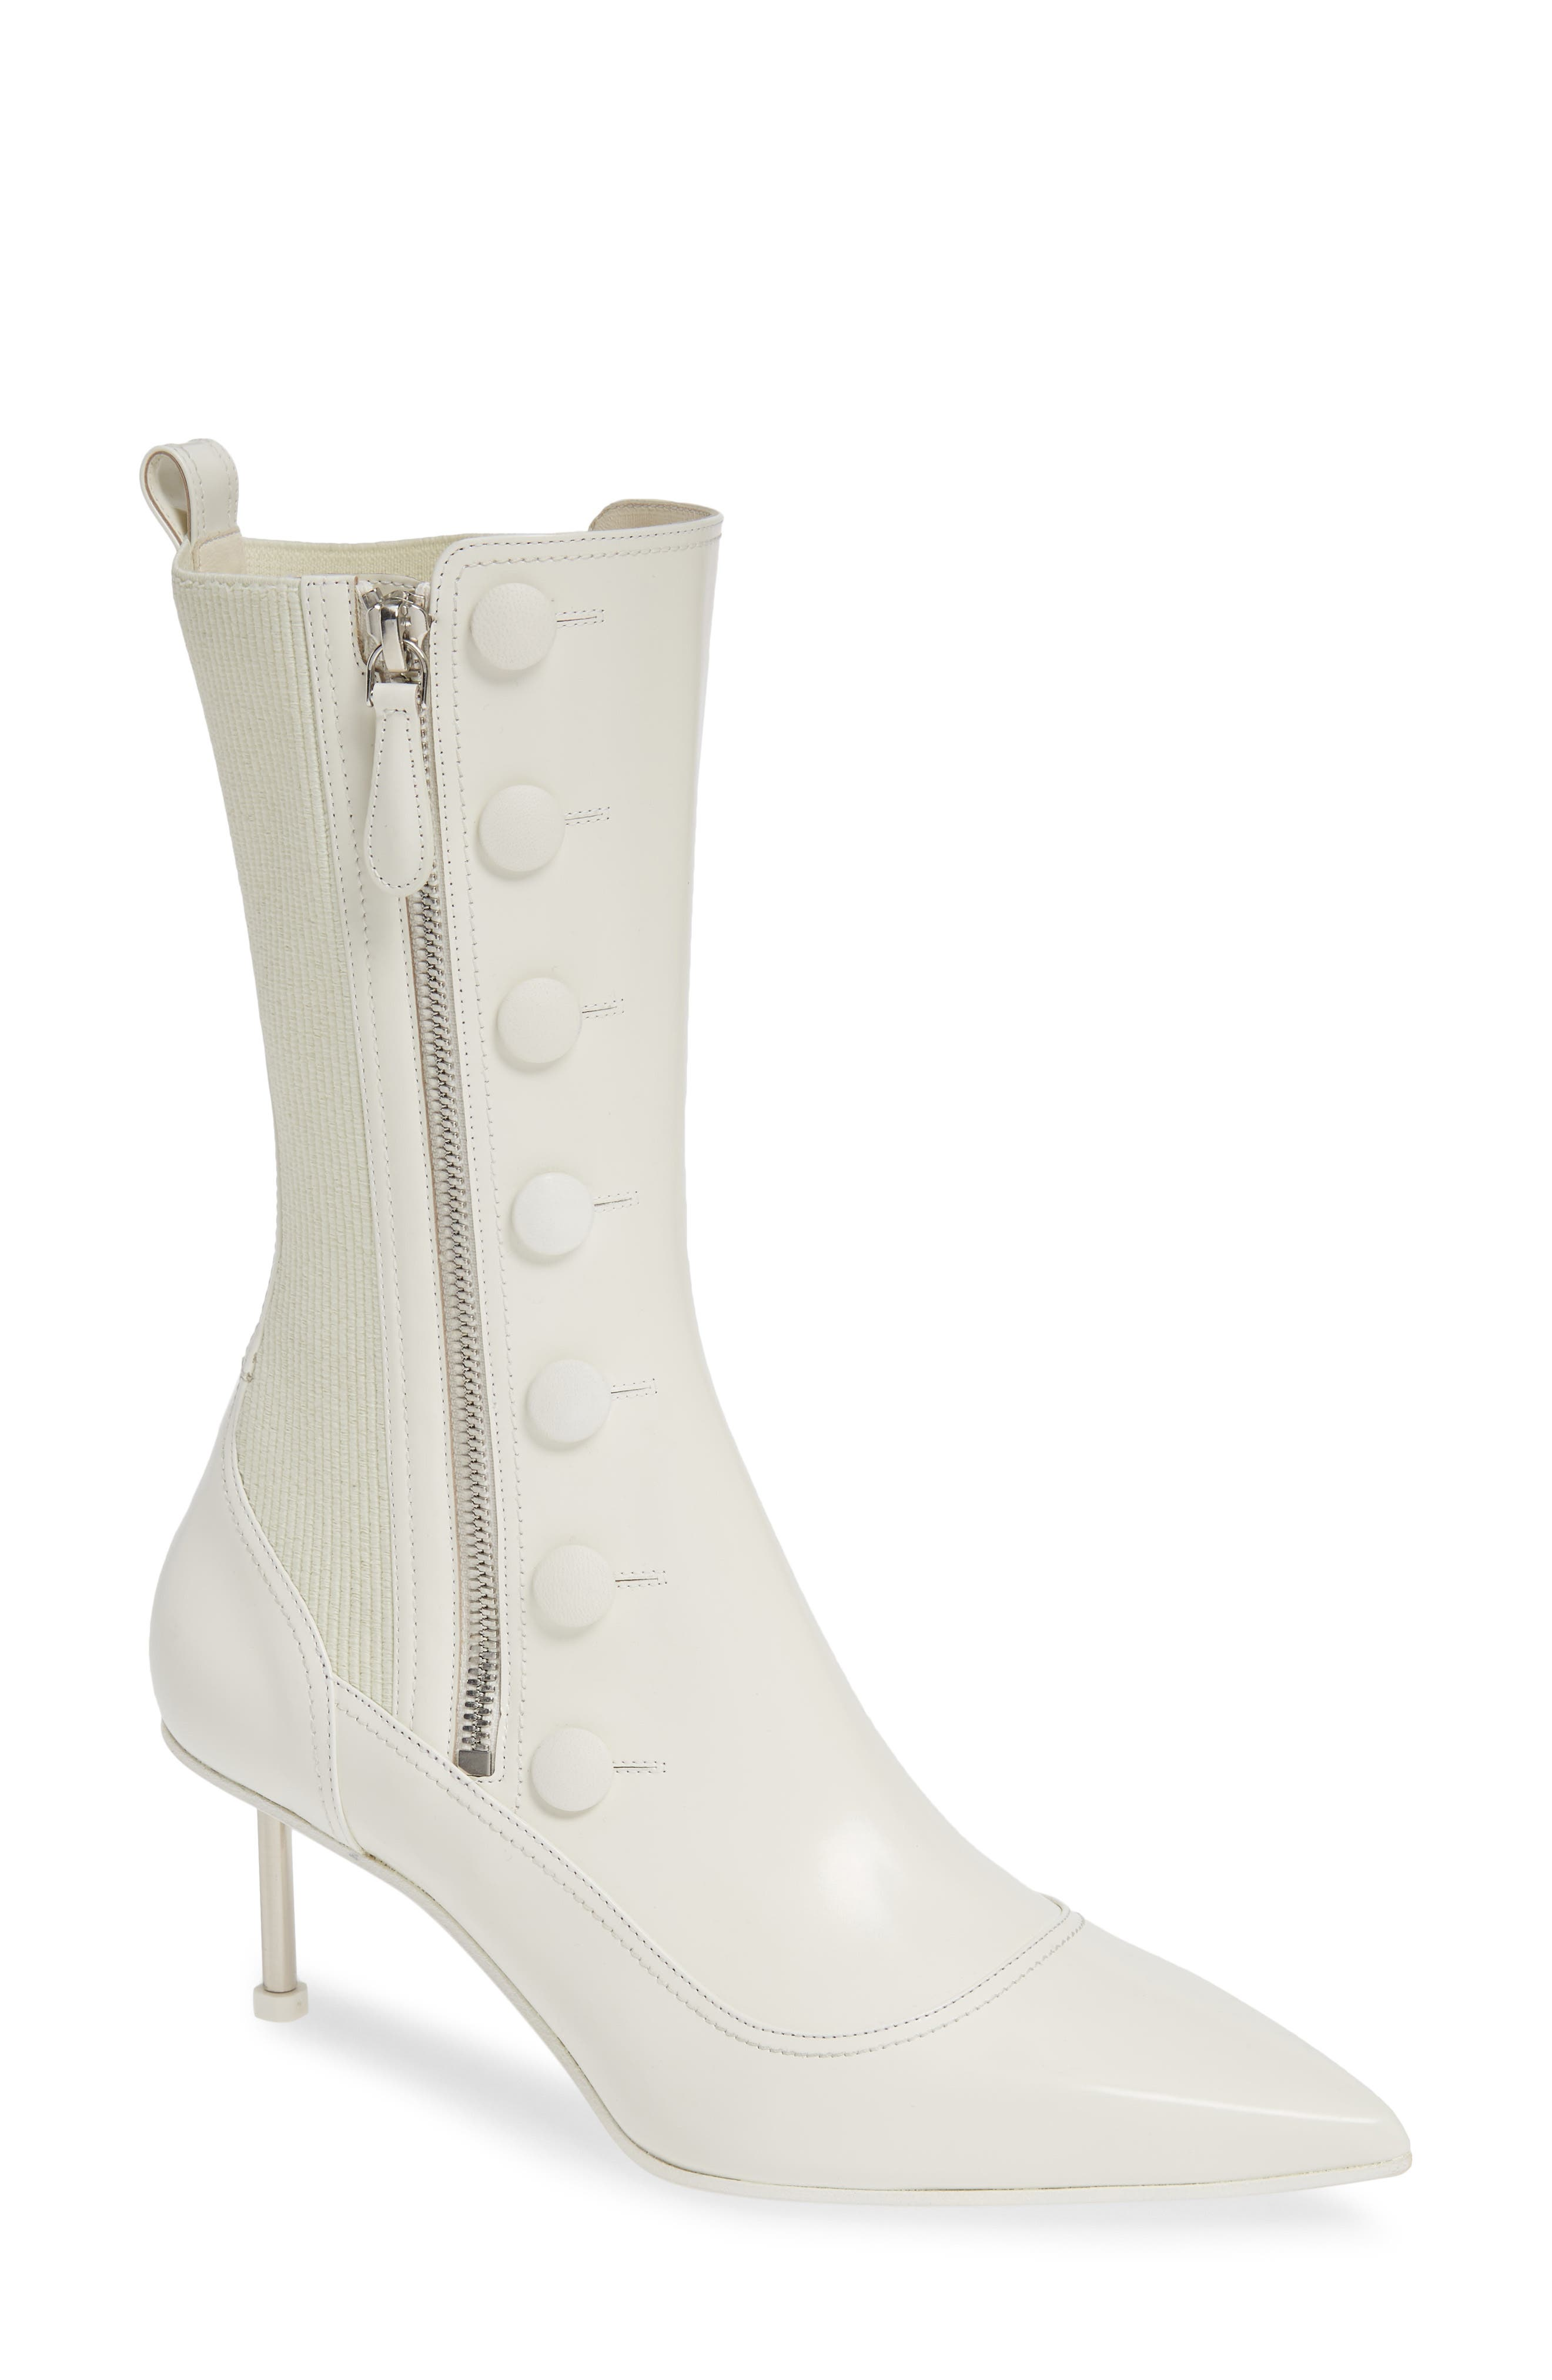 ALEXANDER MCQUEEN, Button Pointy Toe Boot, Main thumbnail 1, color, IVORY/ BLACK